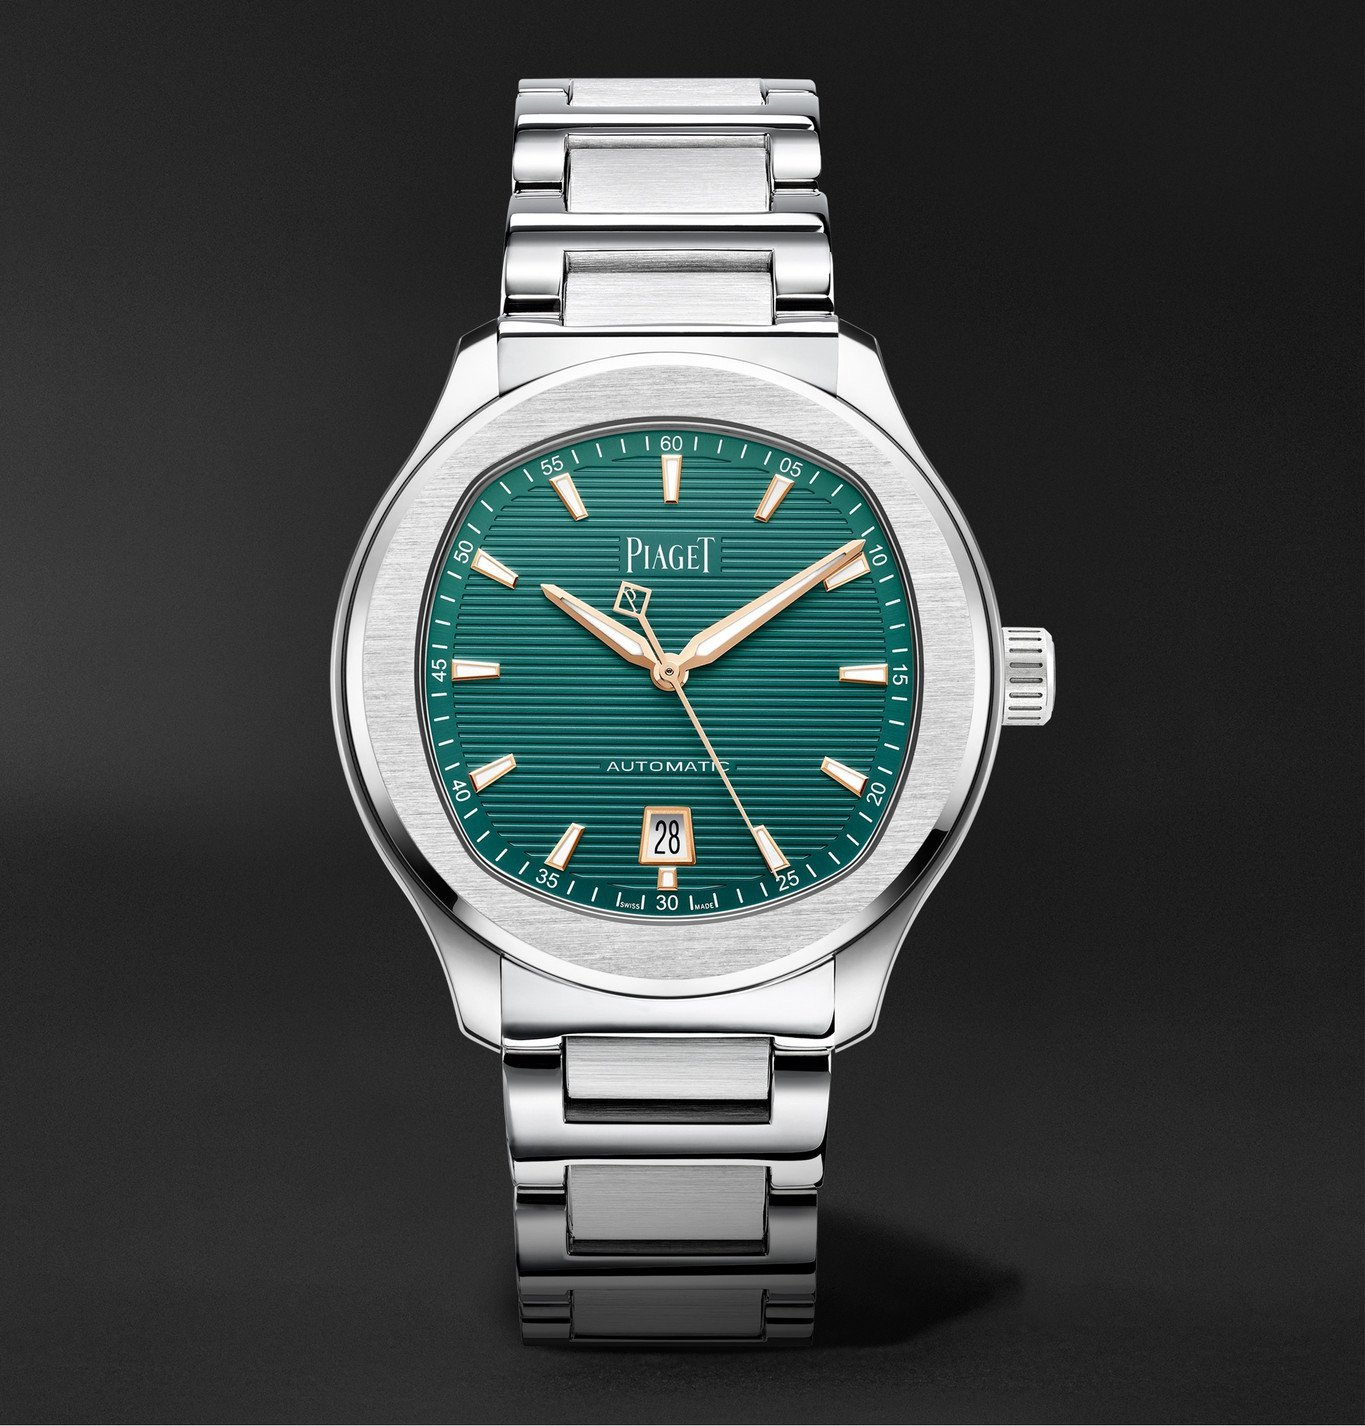 Photo: Piaget - Polo Automatic 42mm Stainless Steel Watch, Ref. No. PGG0A45005 - Green